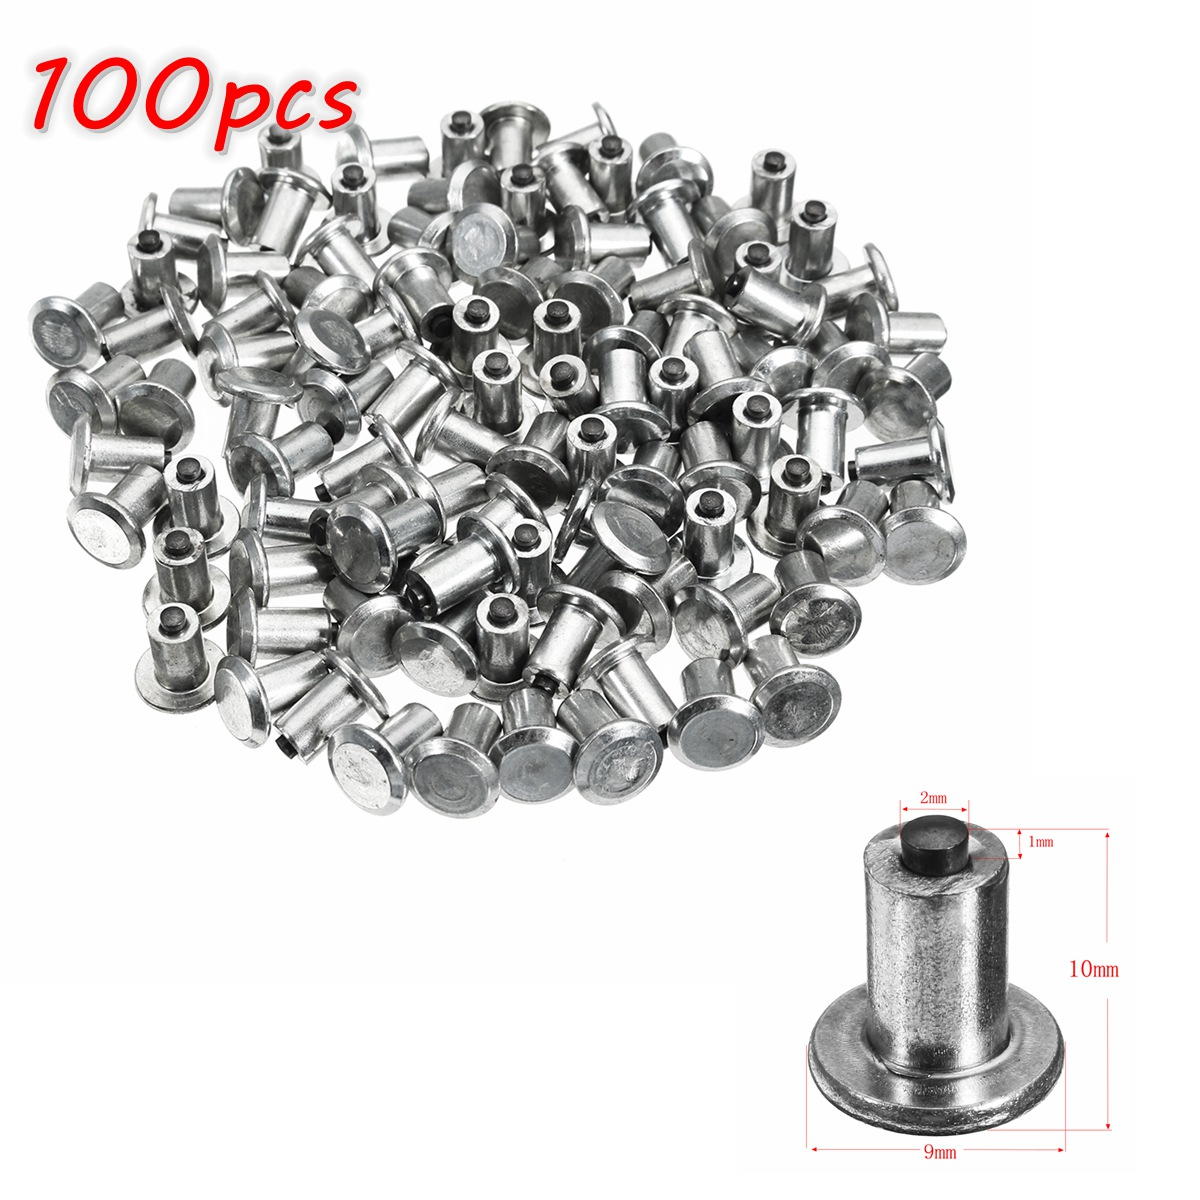 100pcs Spikes for Tires Universal Car Wheel Tyre Snow Spikes Studs Tires Anti-Slip Screw Stud Trim for Auto Car Truck Motorcycle